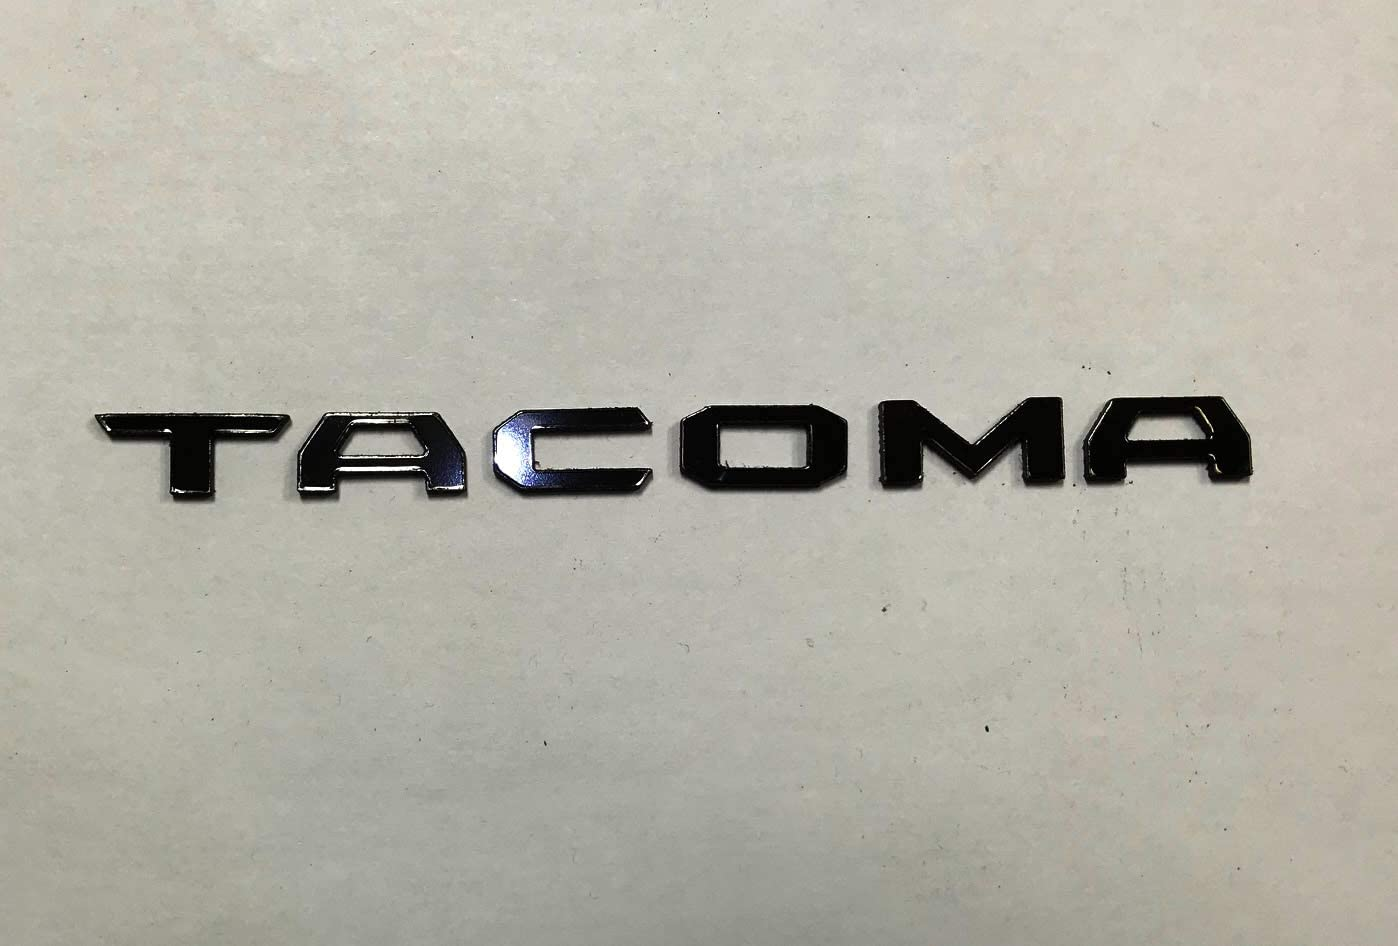 SF Sales USA - Gunmetal Chrome Dashboard Letters fit Tacoma 2016-2019 Plastic Inserts Not Decals